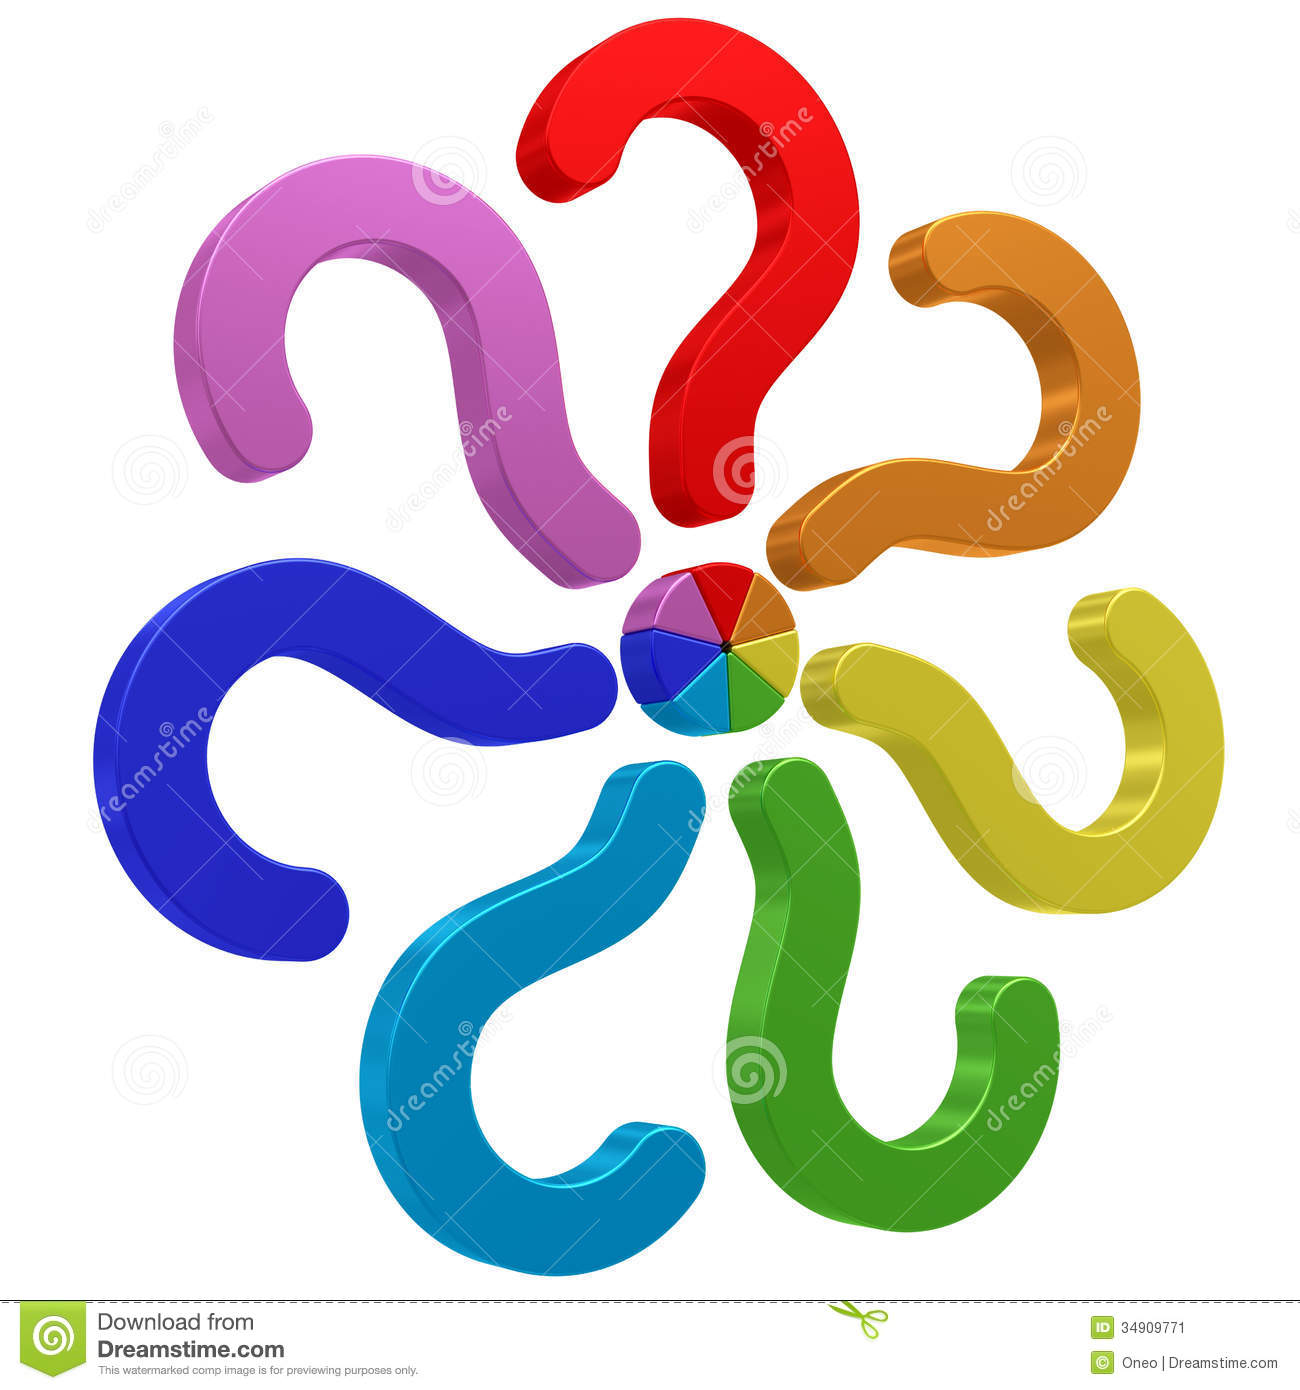 Question Mark Clip Art Png Colorful questi...